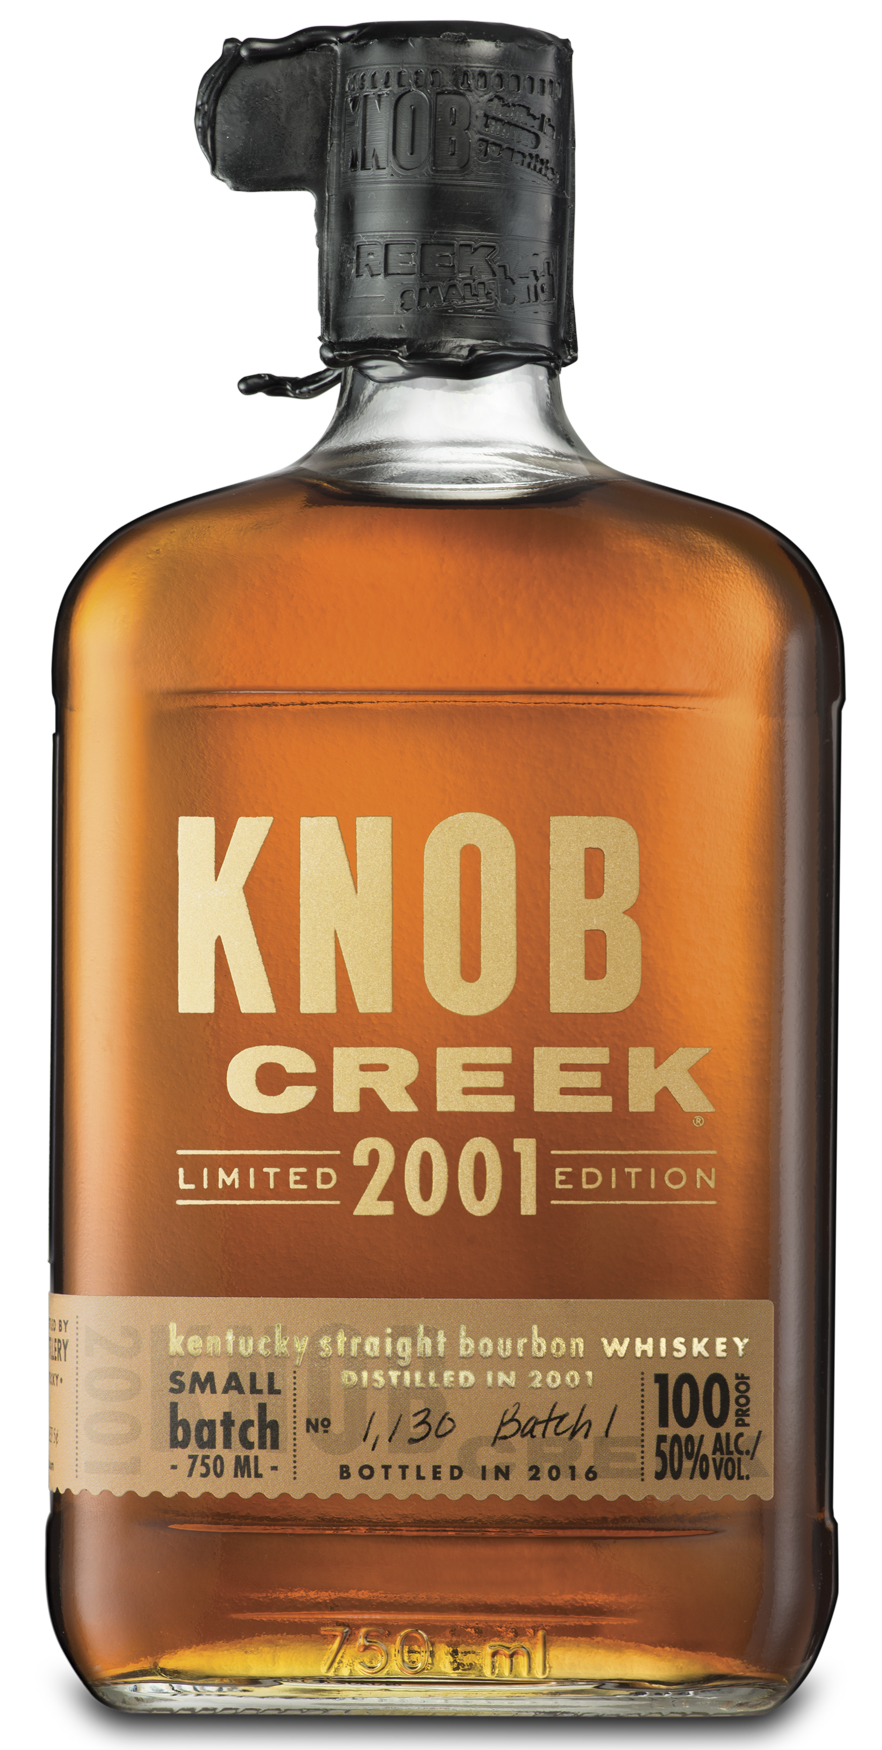 Knob Creek 2001_bottle.jpg